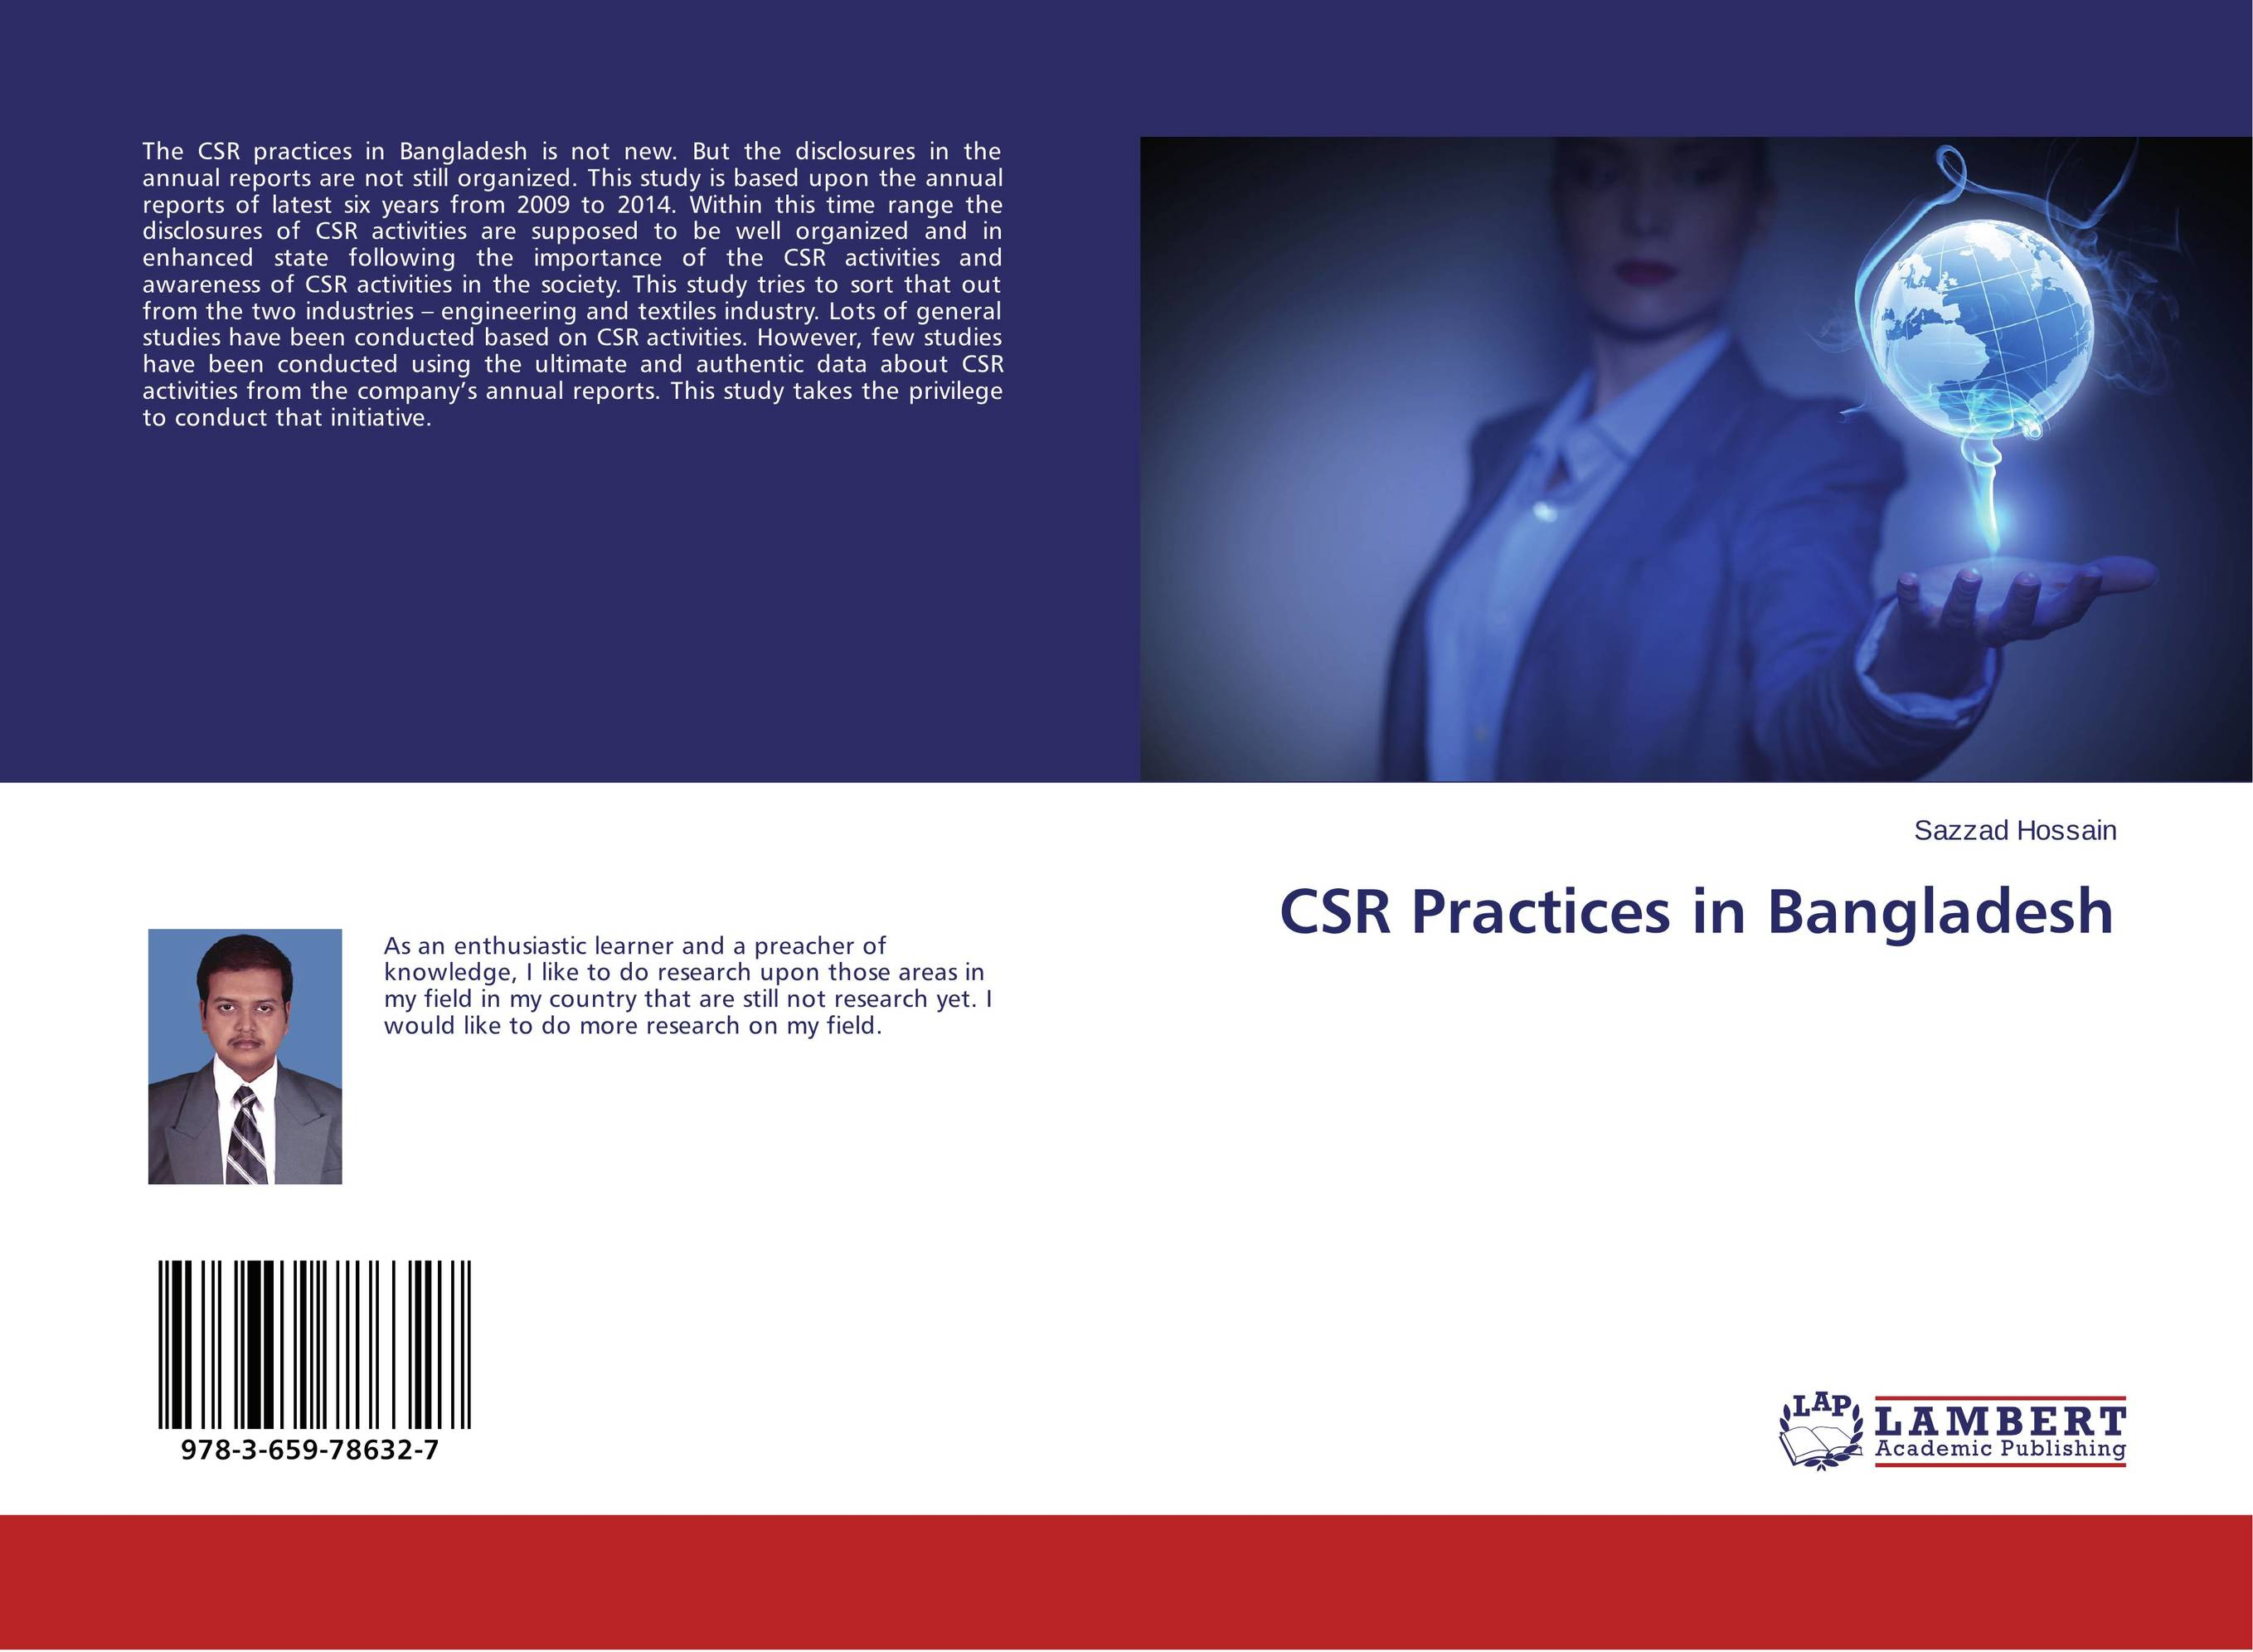 ethical healthcare practices in bangladesh Ethical issues in healthcare in 2017 posted march 10, 2017 by brian neese high ethical standards are essential in healthcare four fundamental principles lay the foundation for healthcare ethics.